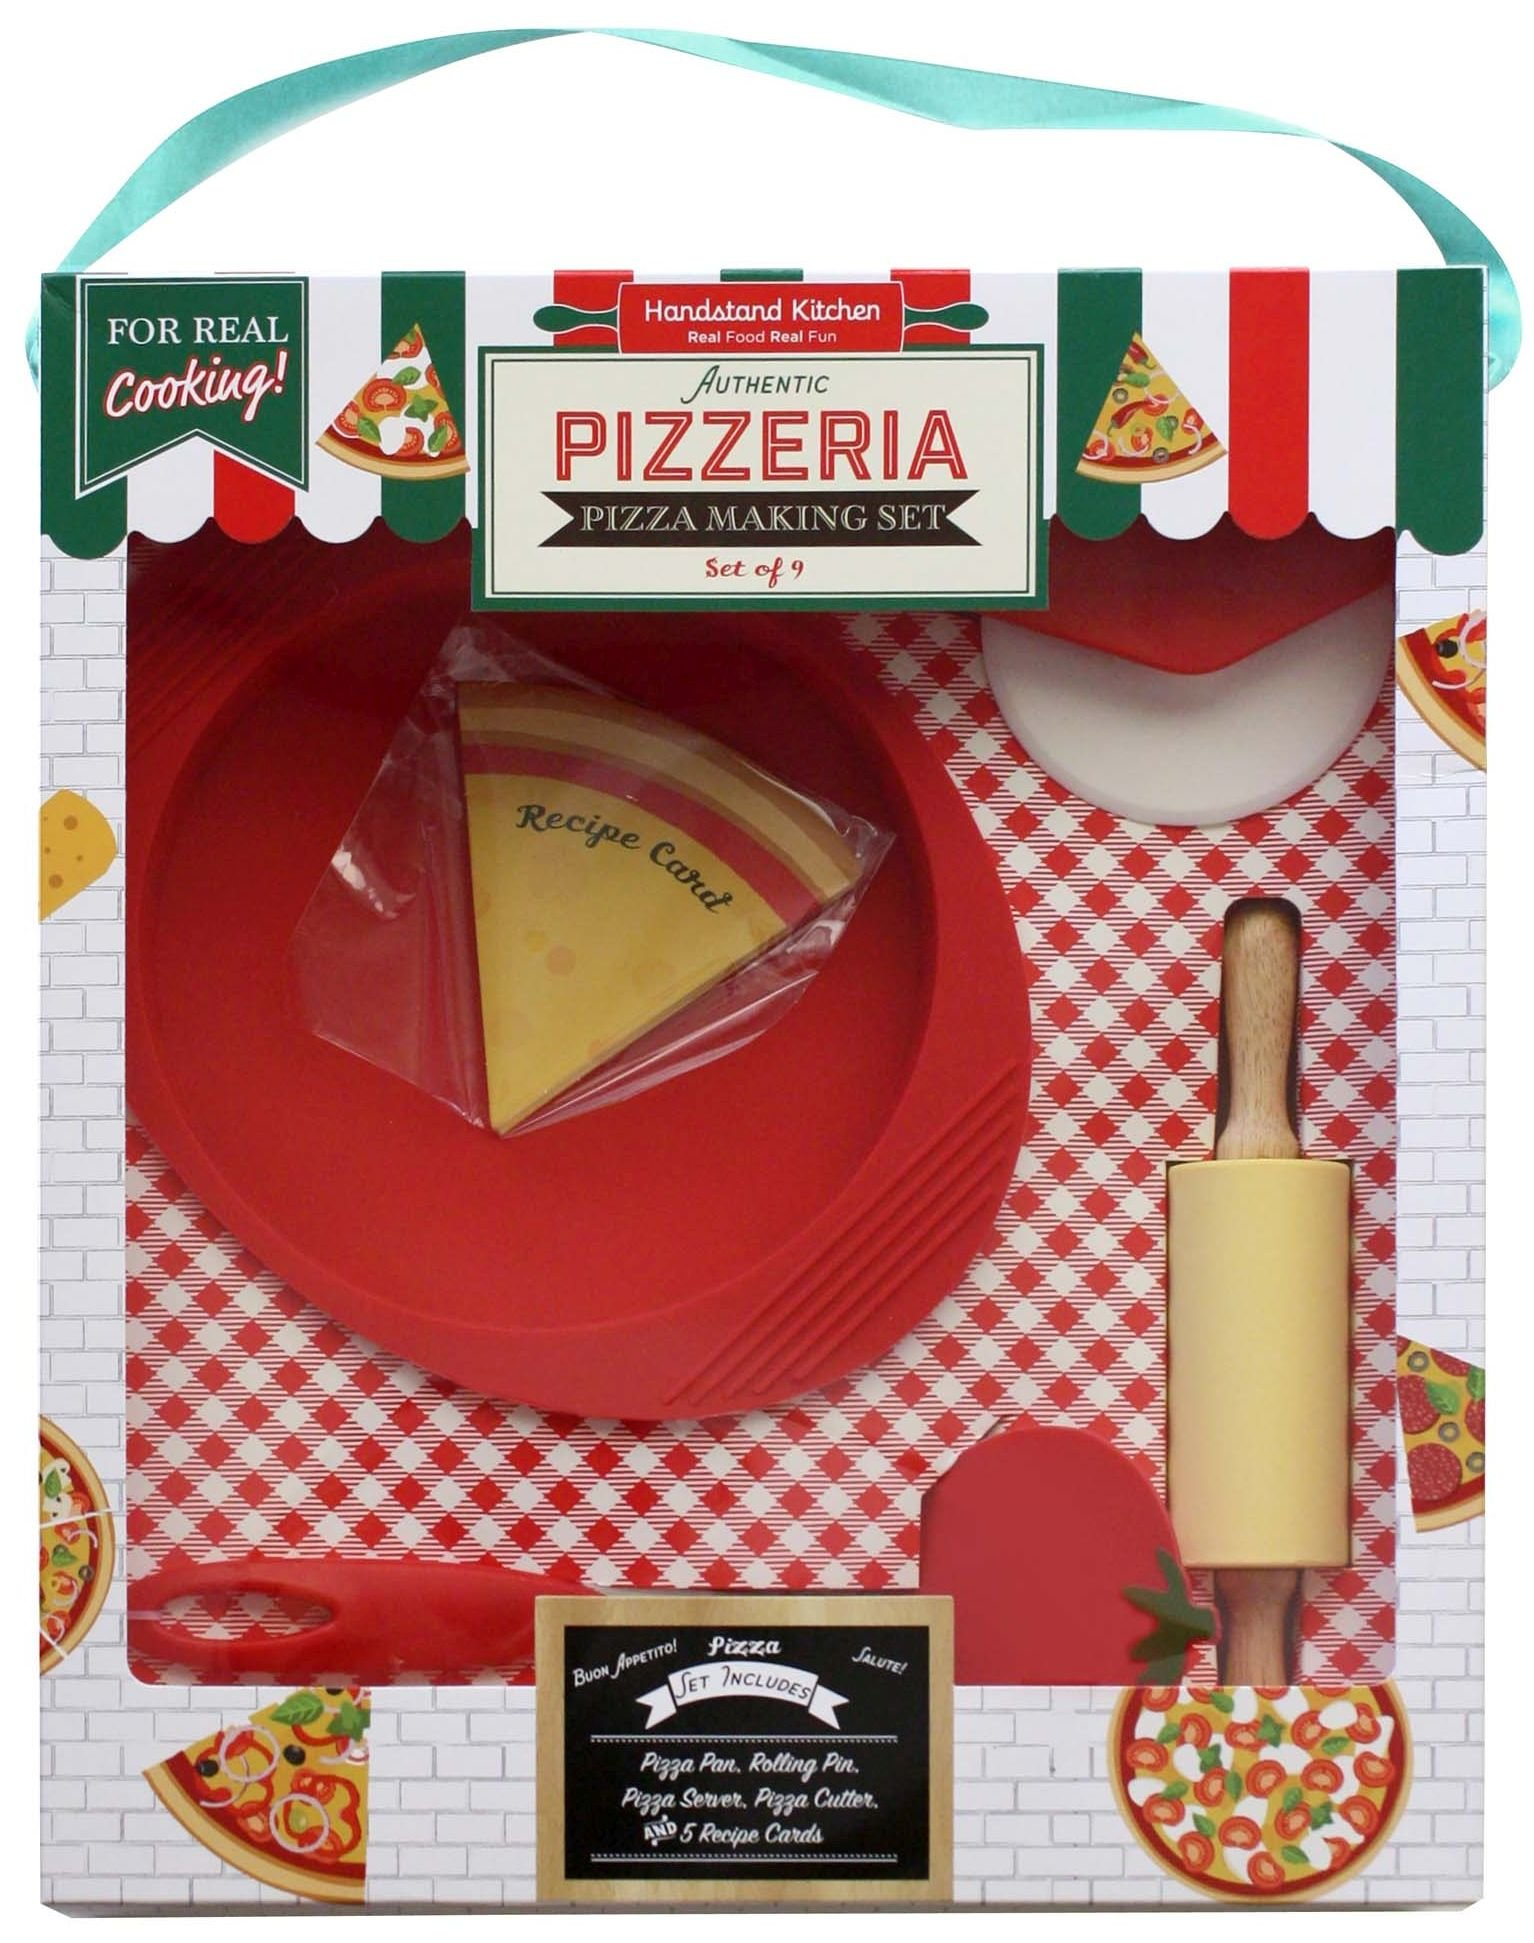 Handstand Kitchen Authentic Pizzeria 9-piece Real Pizza Making Set with Recipes for Kids by Handstand Kitchen (Image #1)